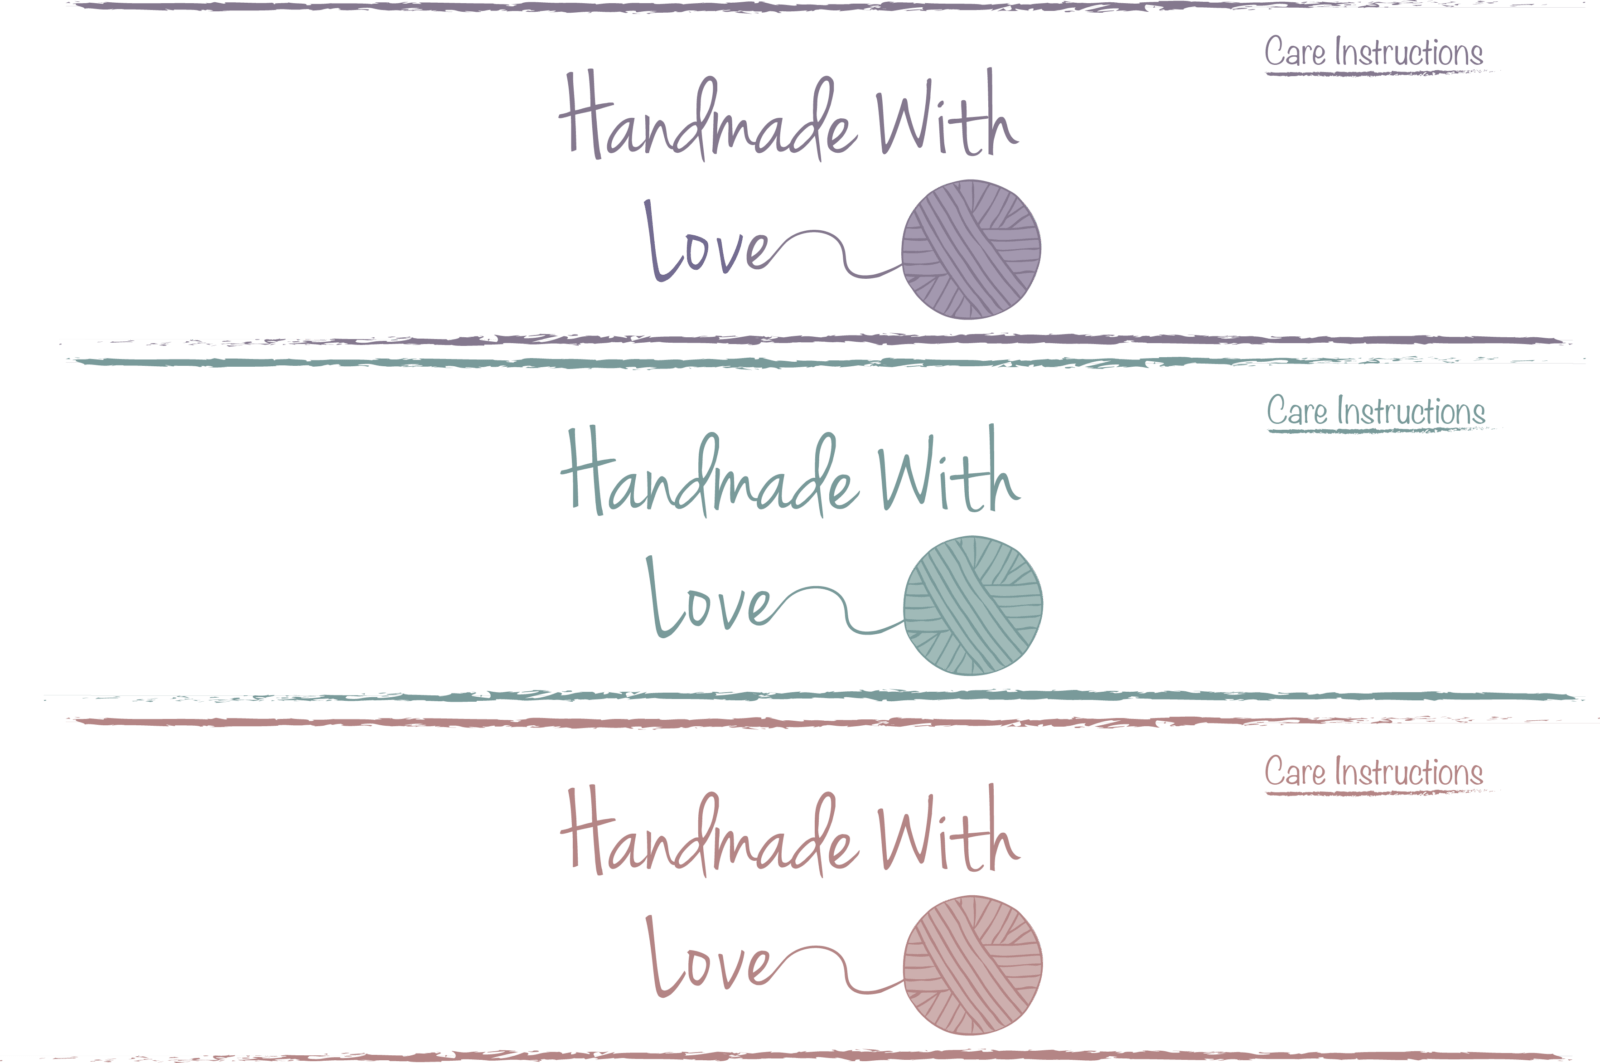 Handmade With Love Labels